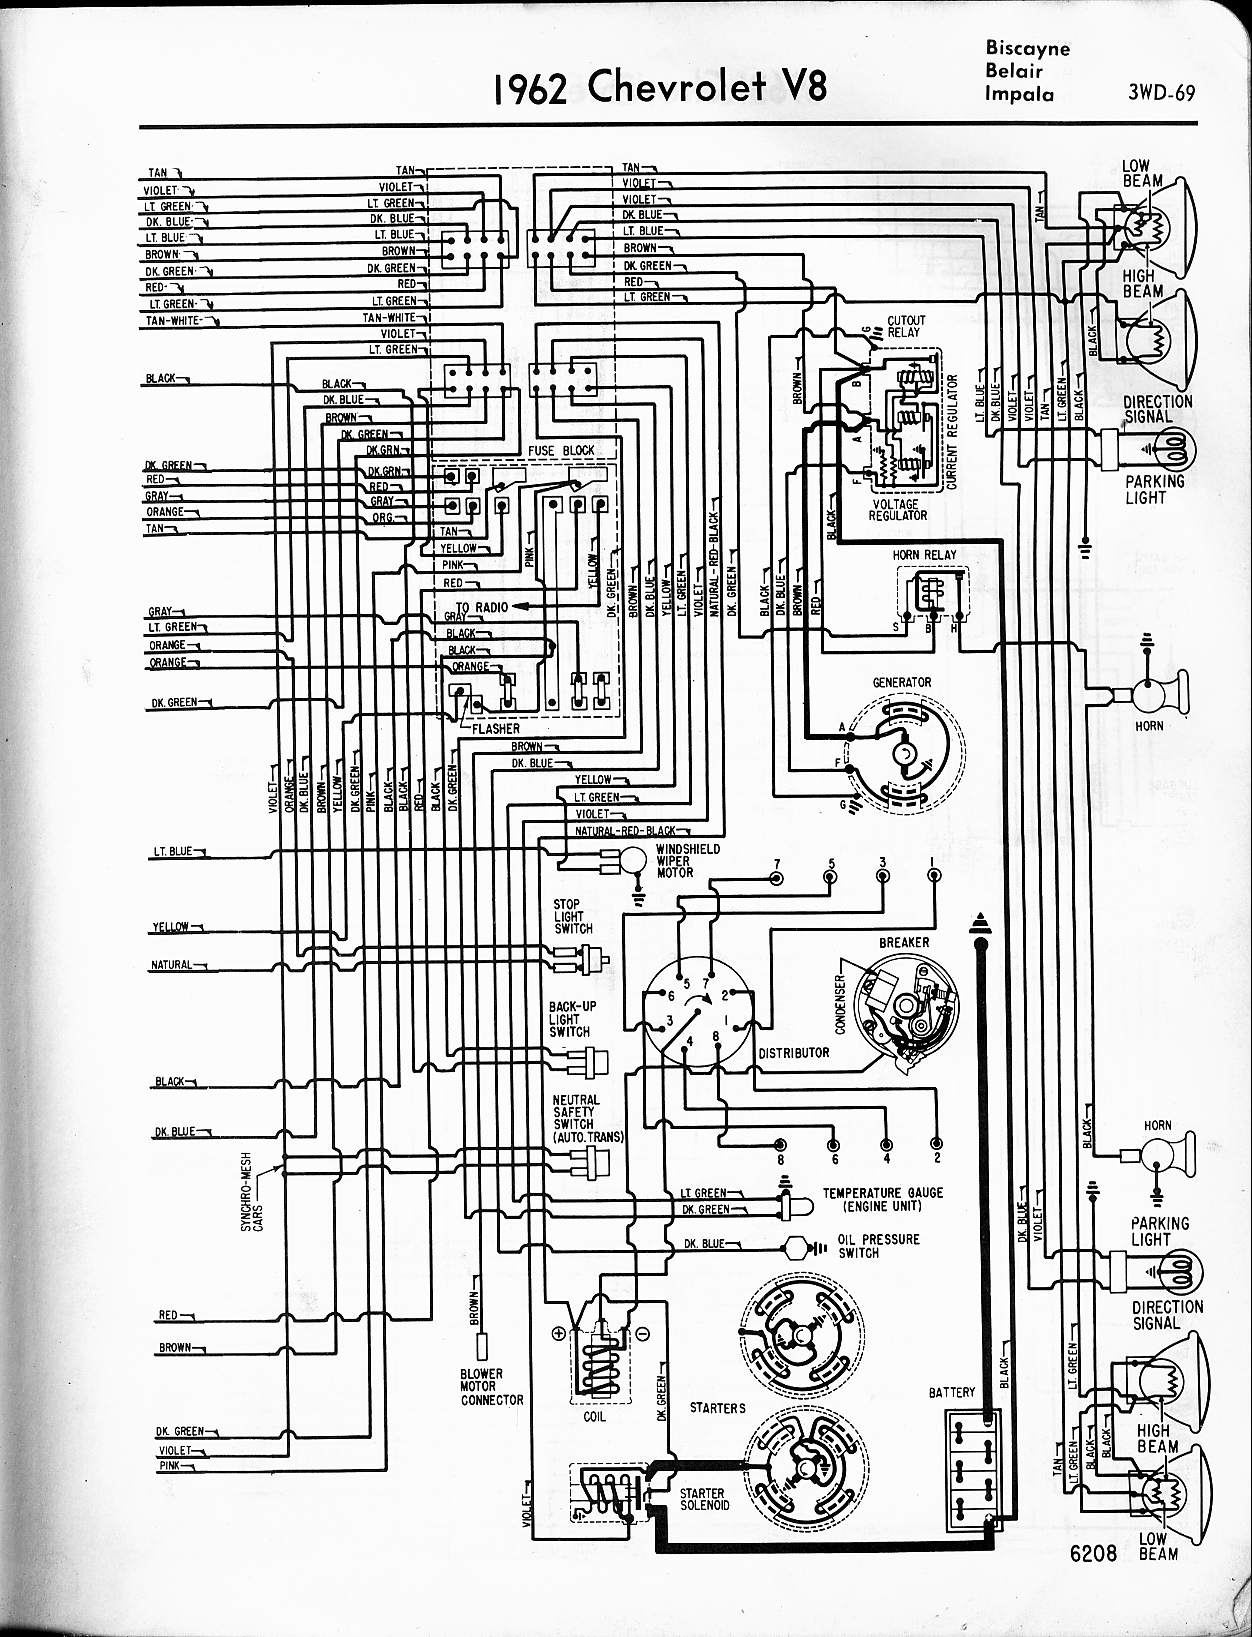 hight resolution of windshield wiper wiring diagram for 2003 chevy impala schematics rh parntesis co 2006 pontiac g6 fuse